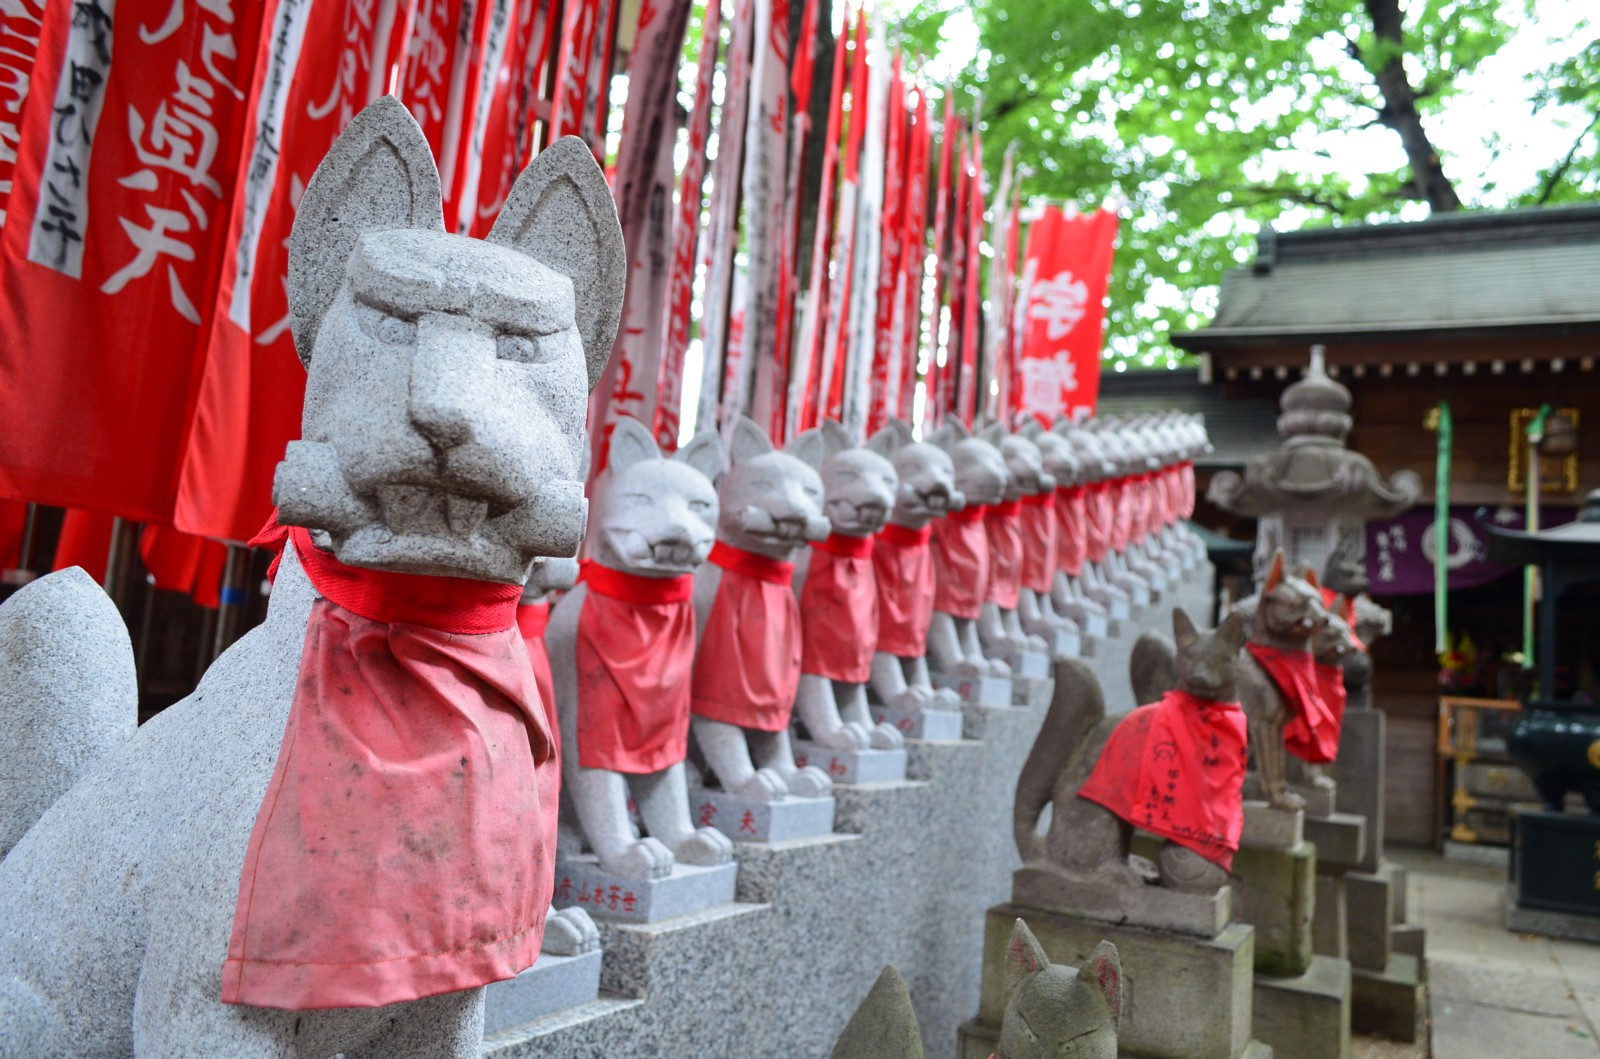 Unique and photo-worthy shrine with fox statues